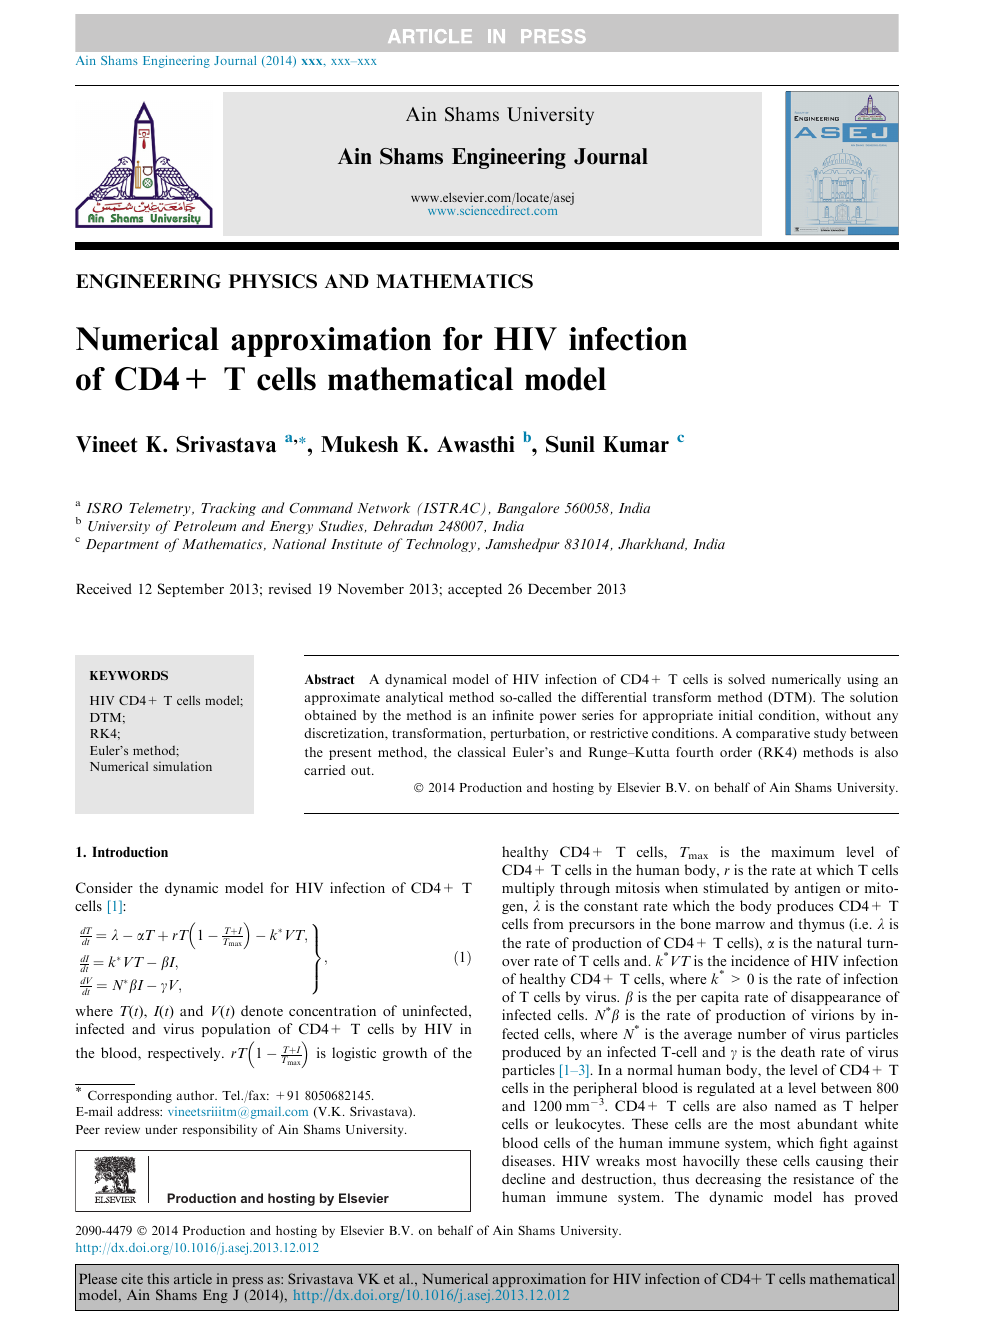 Asej numerical approximation for hiv infection of cd4+ t cells